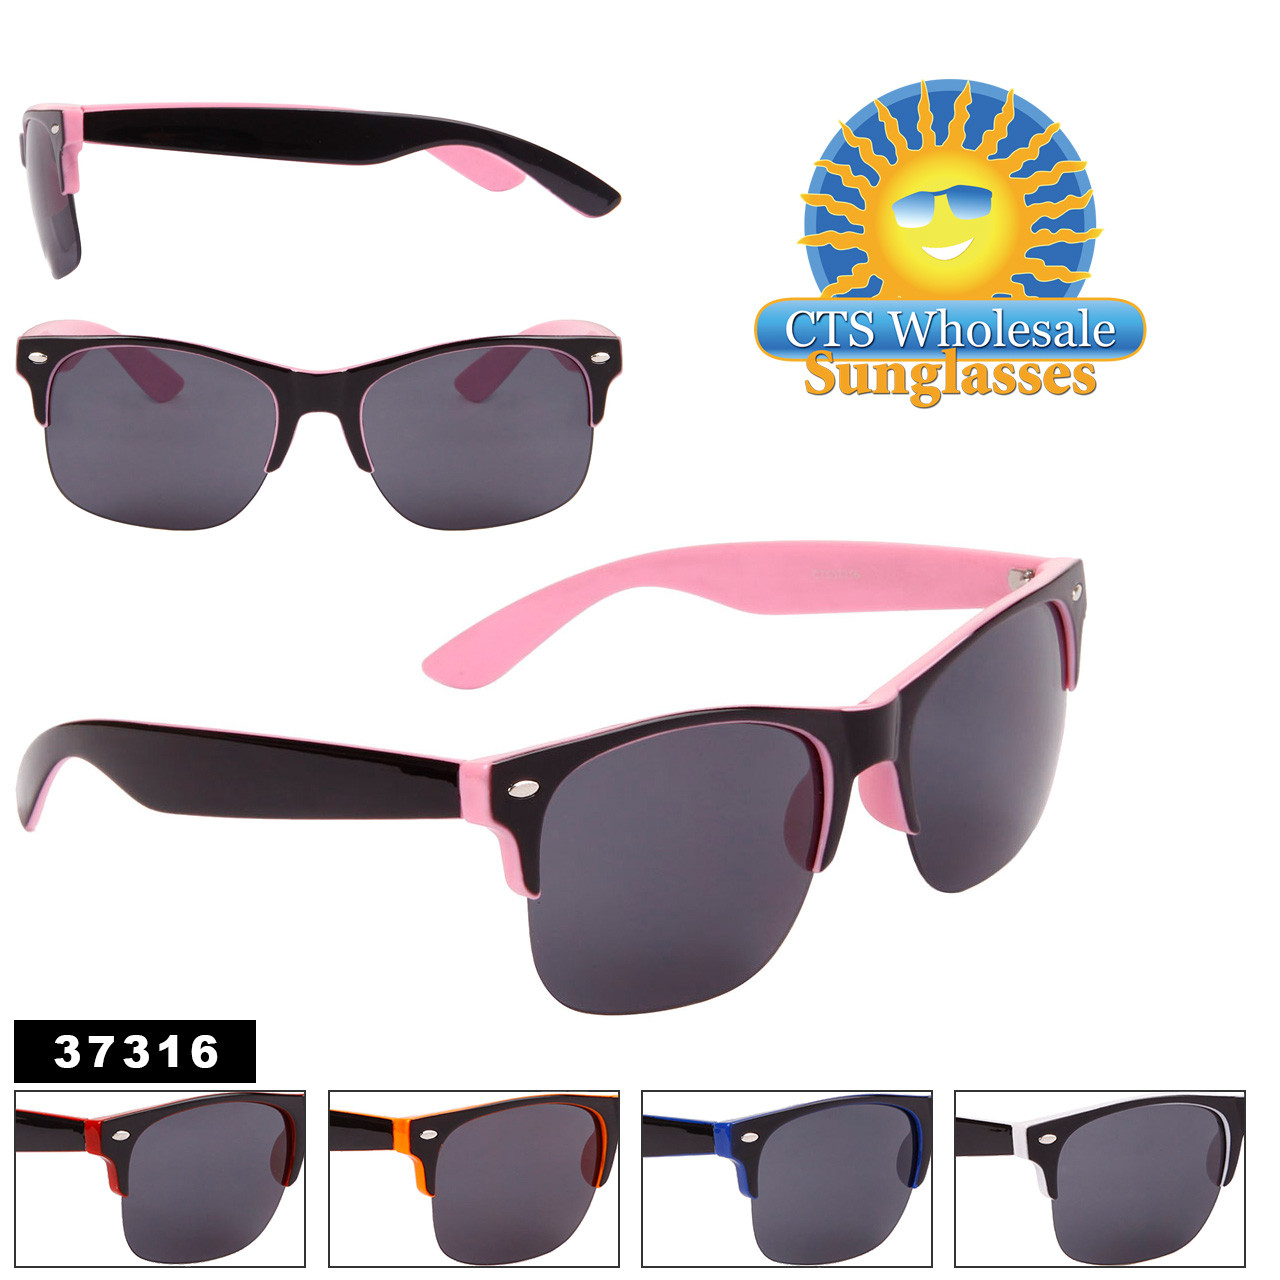 Unisex Sunglasses by the Dozen - Style #37316